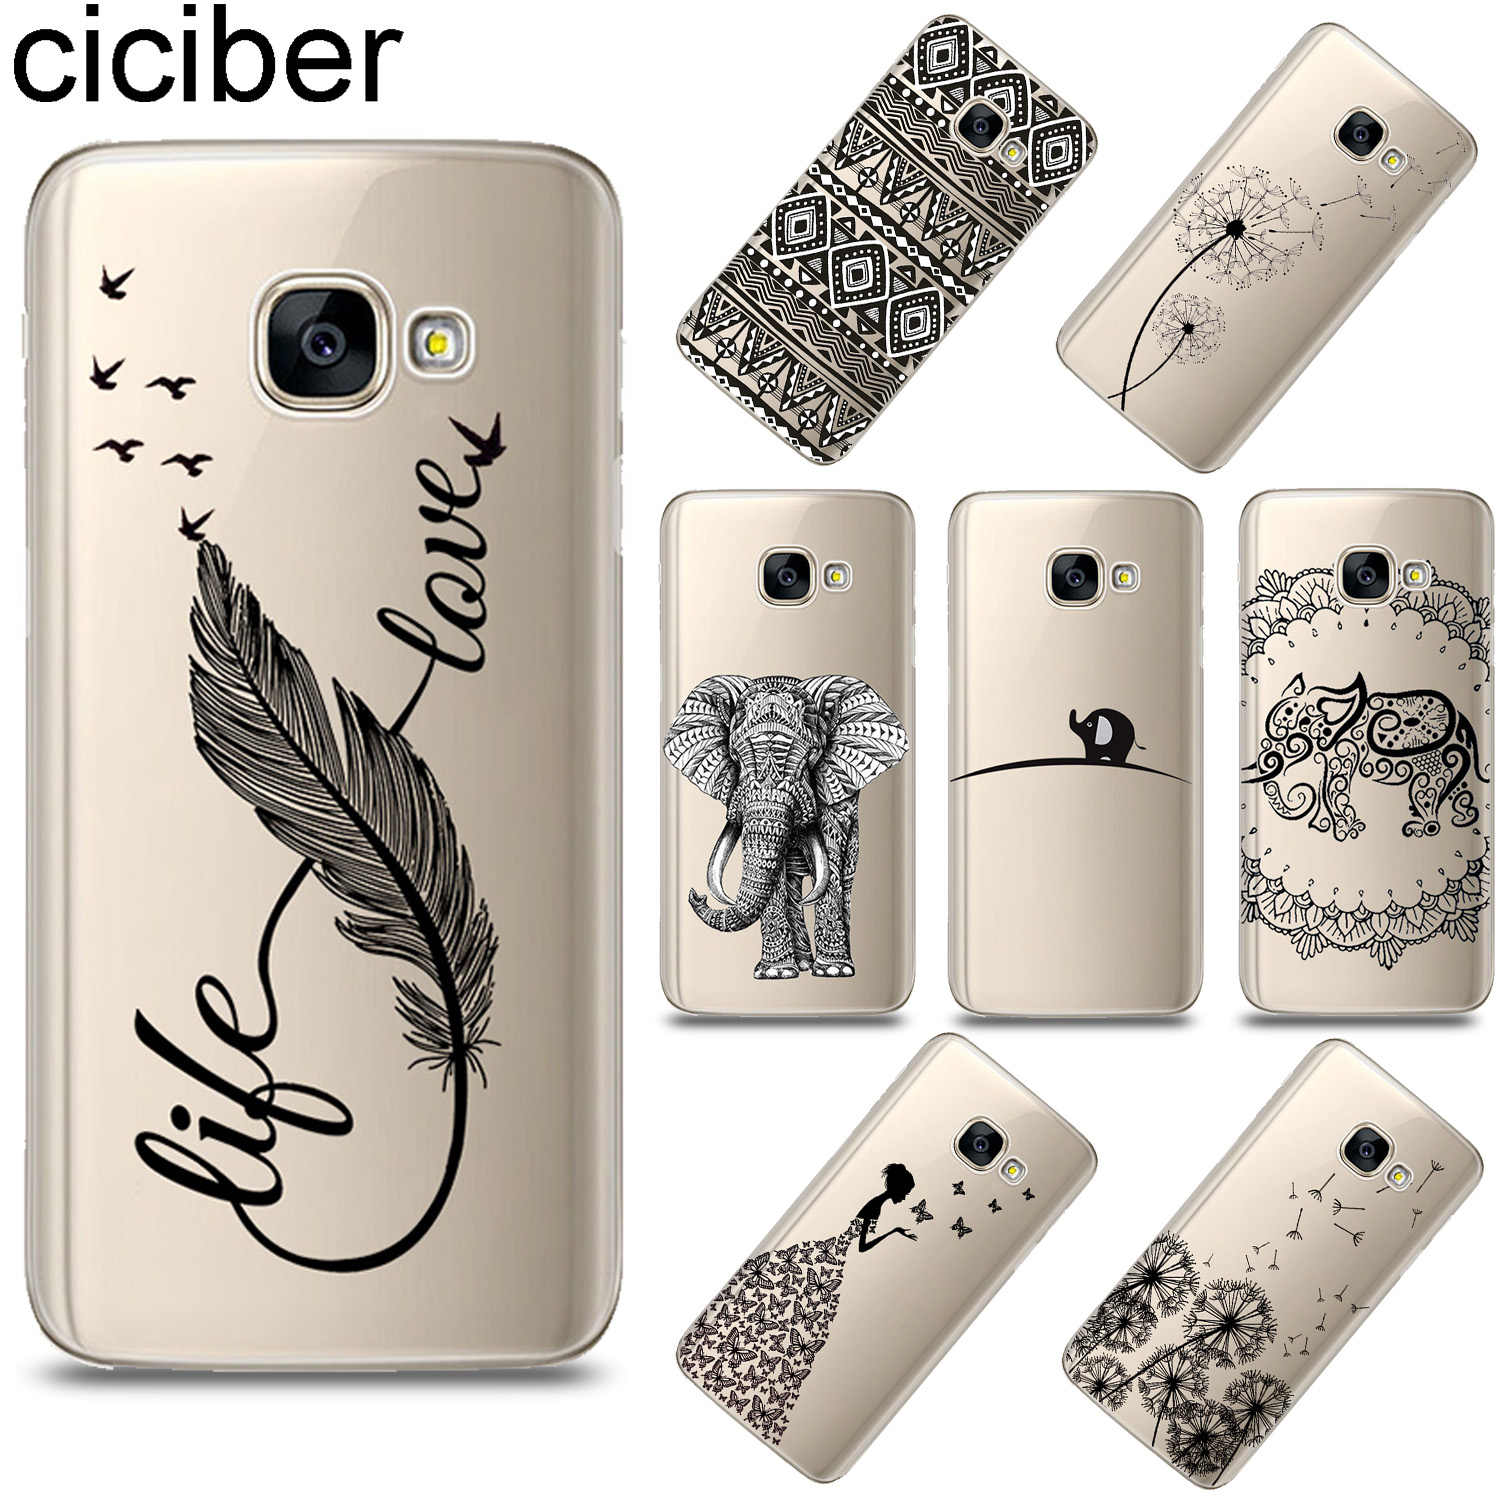 ciciber Totem Animal Feather For Samsung Galaxy A8 A9 2018 PRO A6 A8 Plus 2018 A5 2016 A3 A7 2017 Soft TPU Phone Case Funda Capa